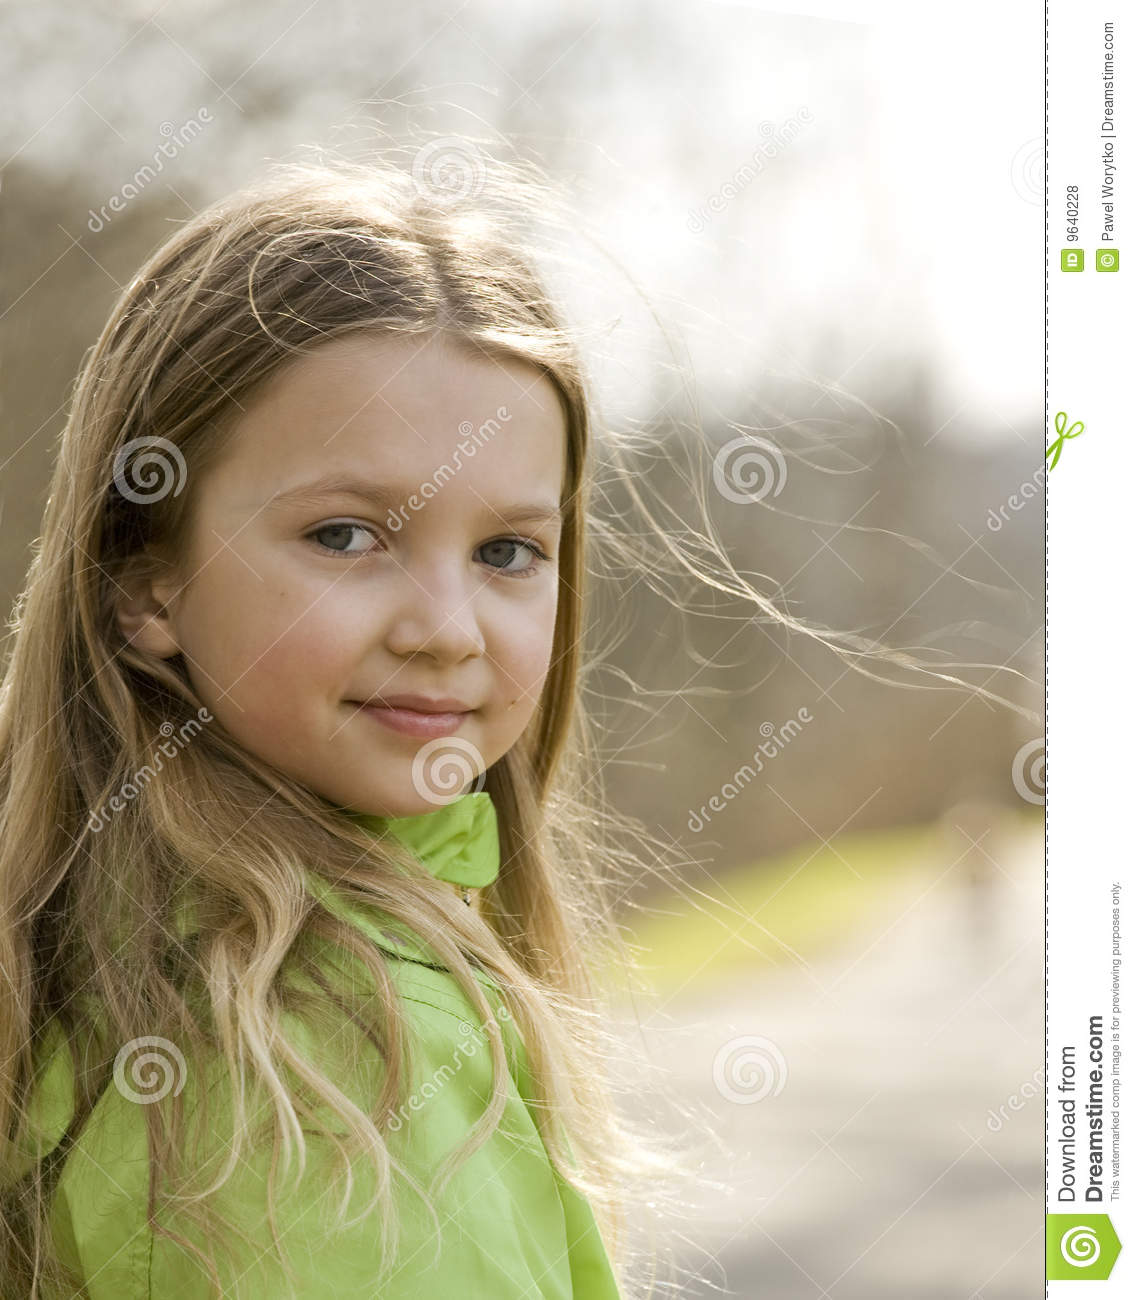 Happy Little Girl Royalty Free Stock Photos - Image: 9640228